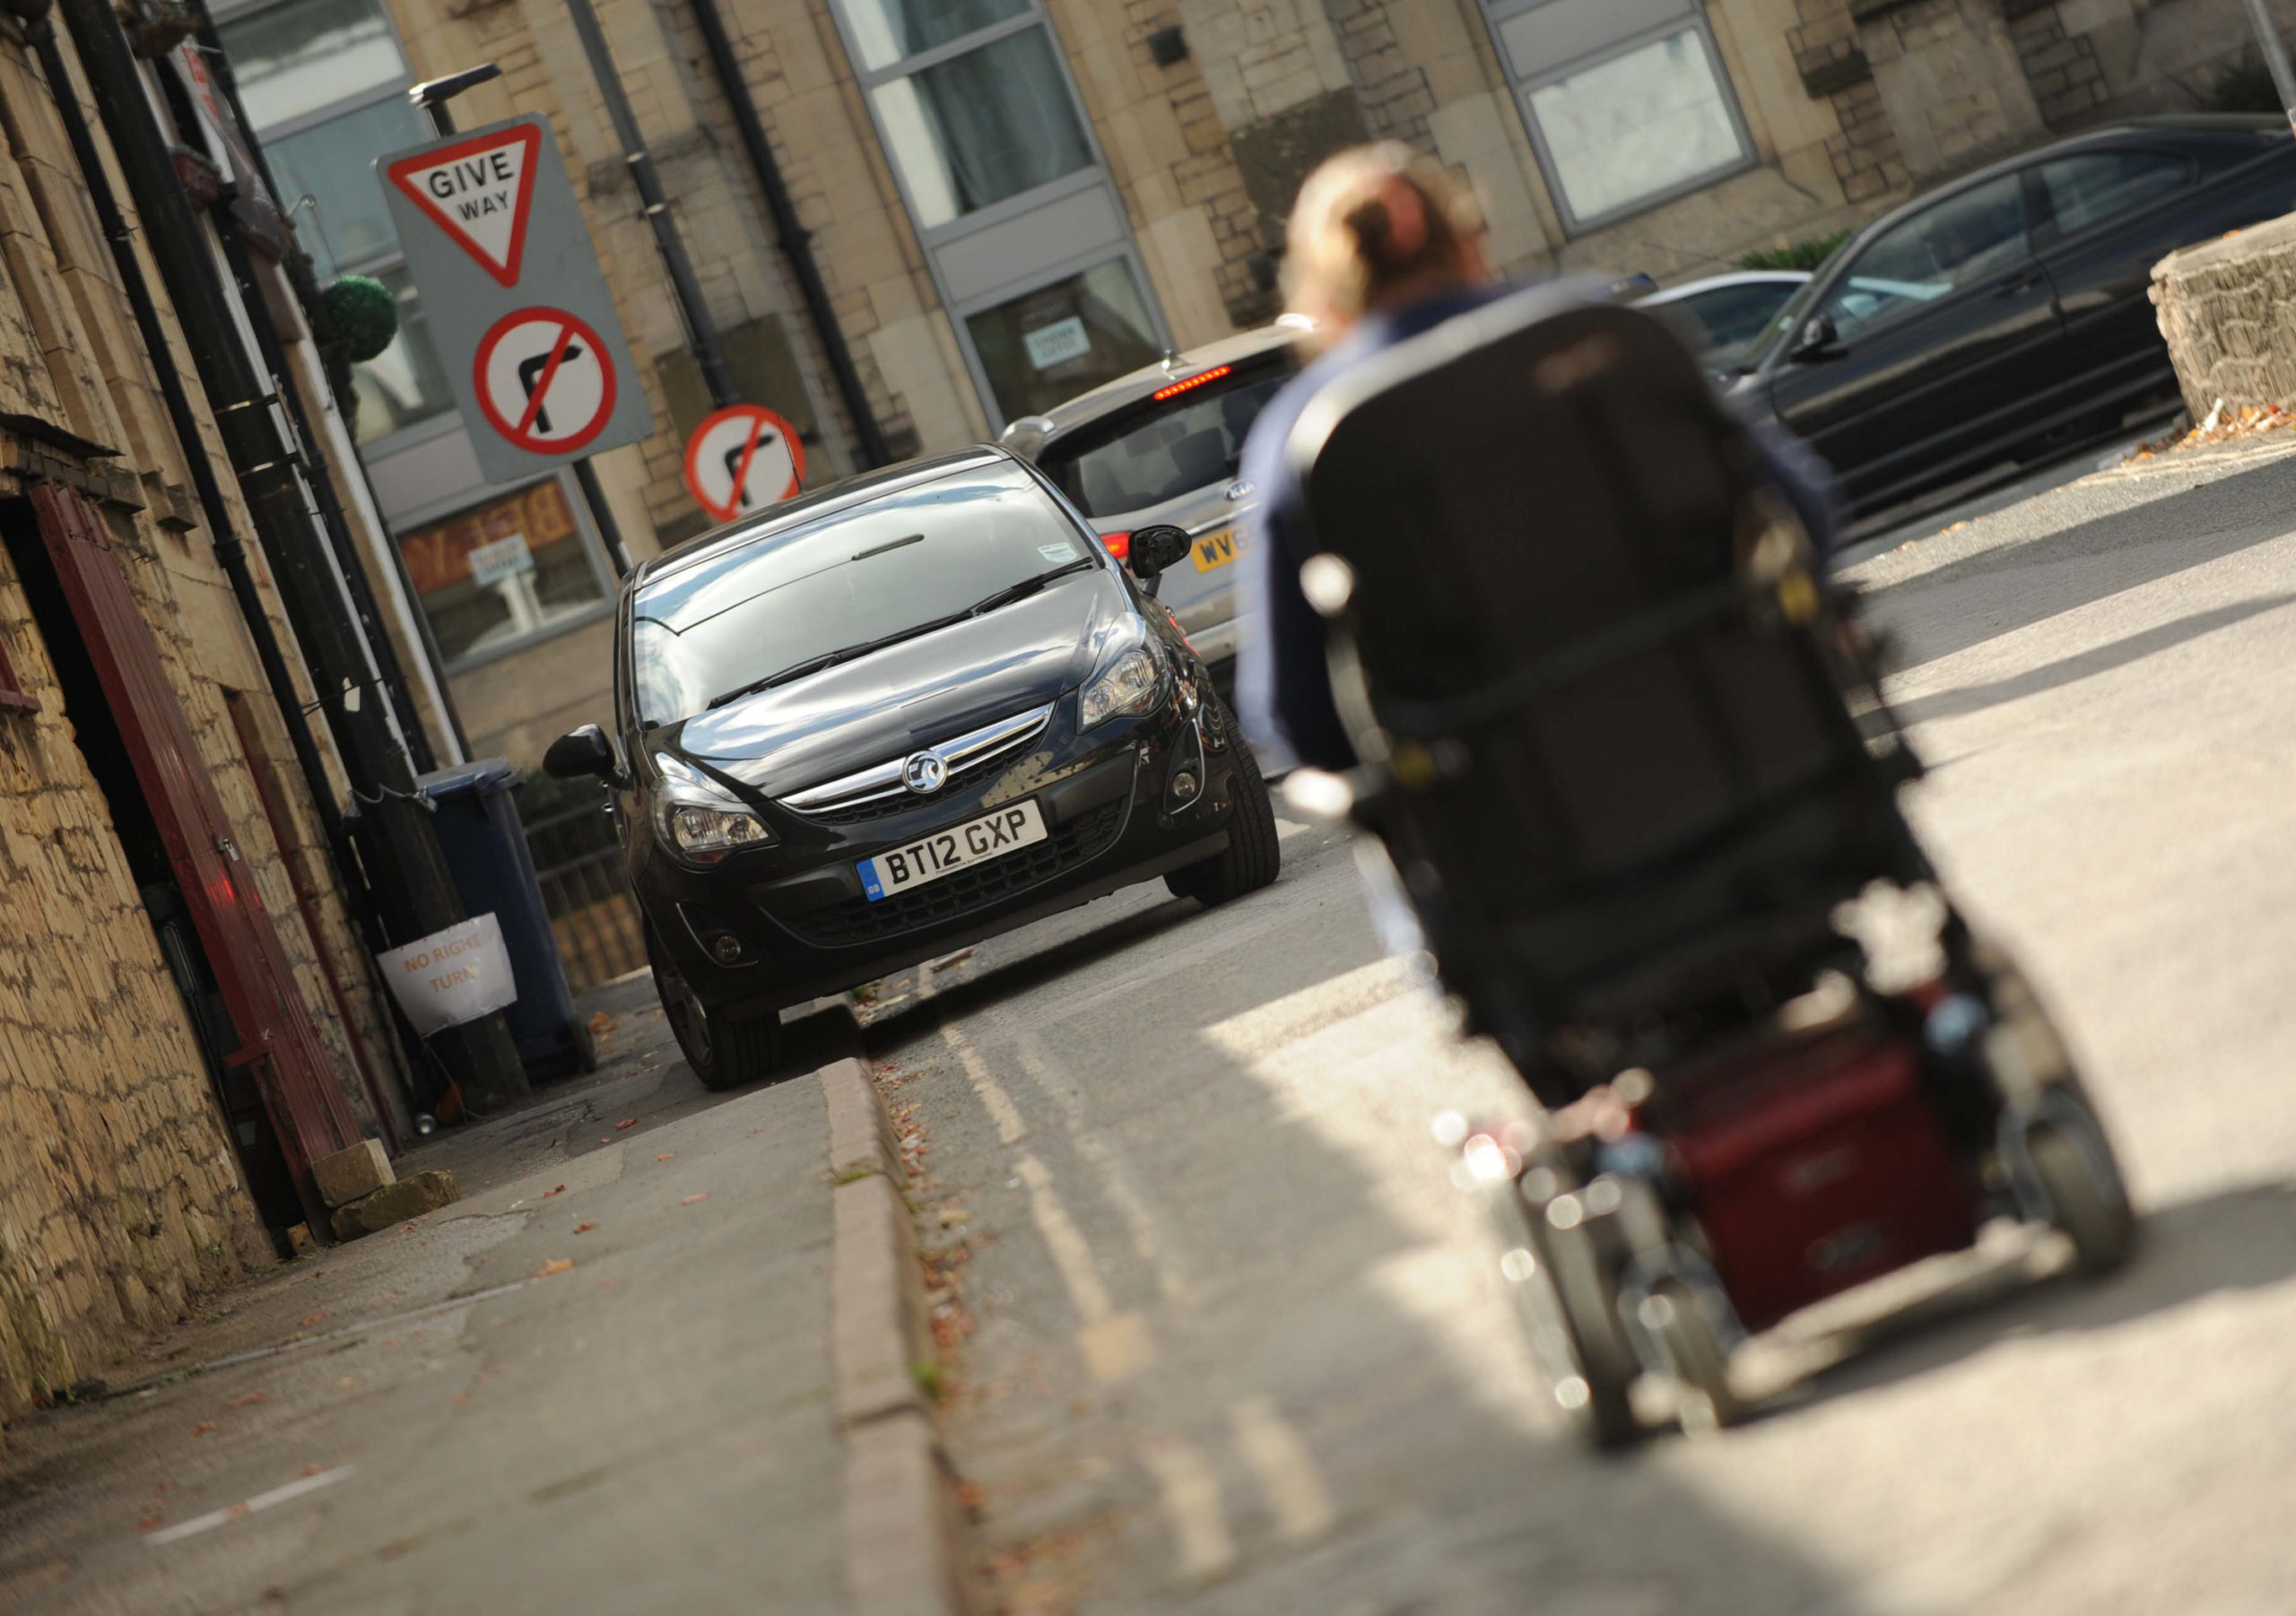 Mandatory Credit: Photo by Paul Gillis/Shutterstock (8556754b) Disabled woman unable to use footpath due to sidewalk parking, car parked on double yellow line. Disabled woman unable to use footpath due to car parked on pavement, UK - 14 Oct 2015